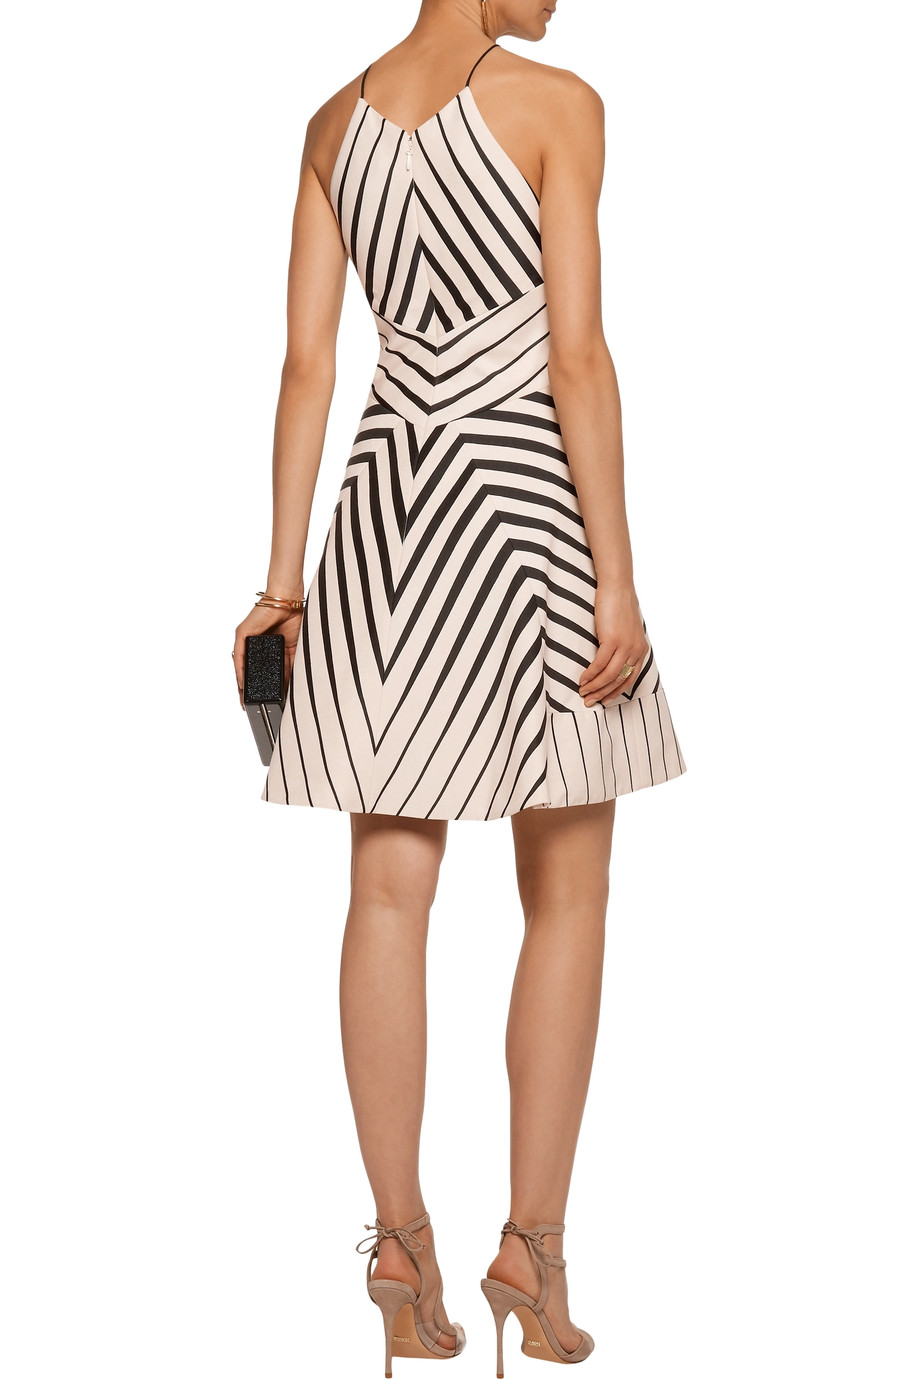 mini dresses Halston Heritage buy mini dresses Halston Heritage internet shop